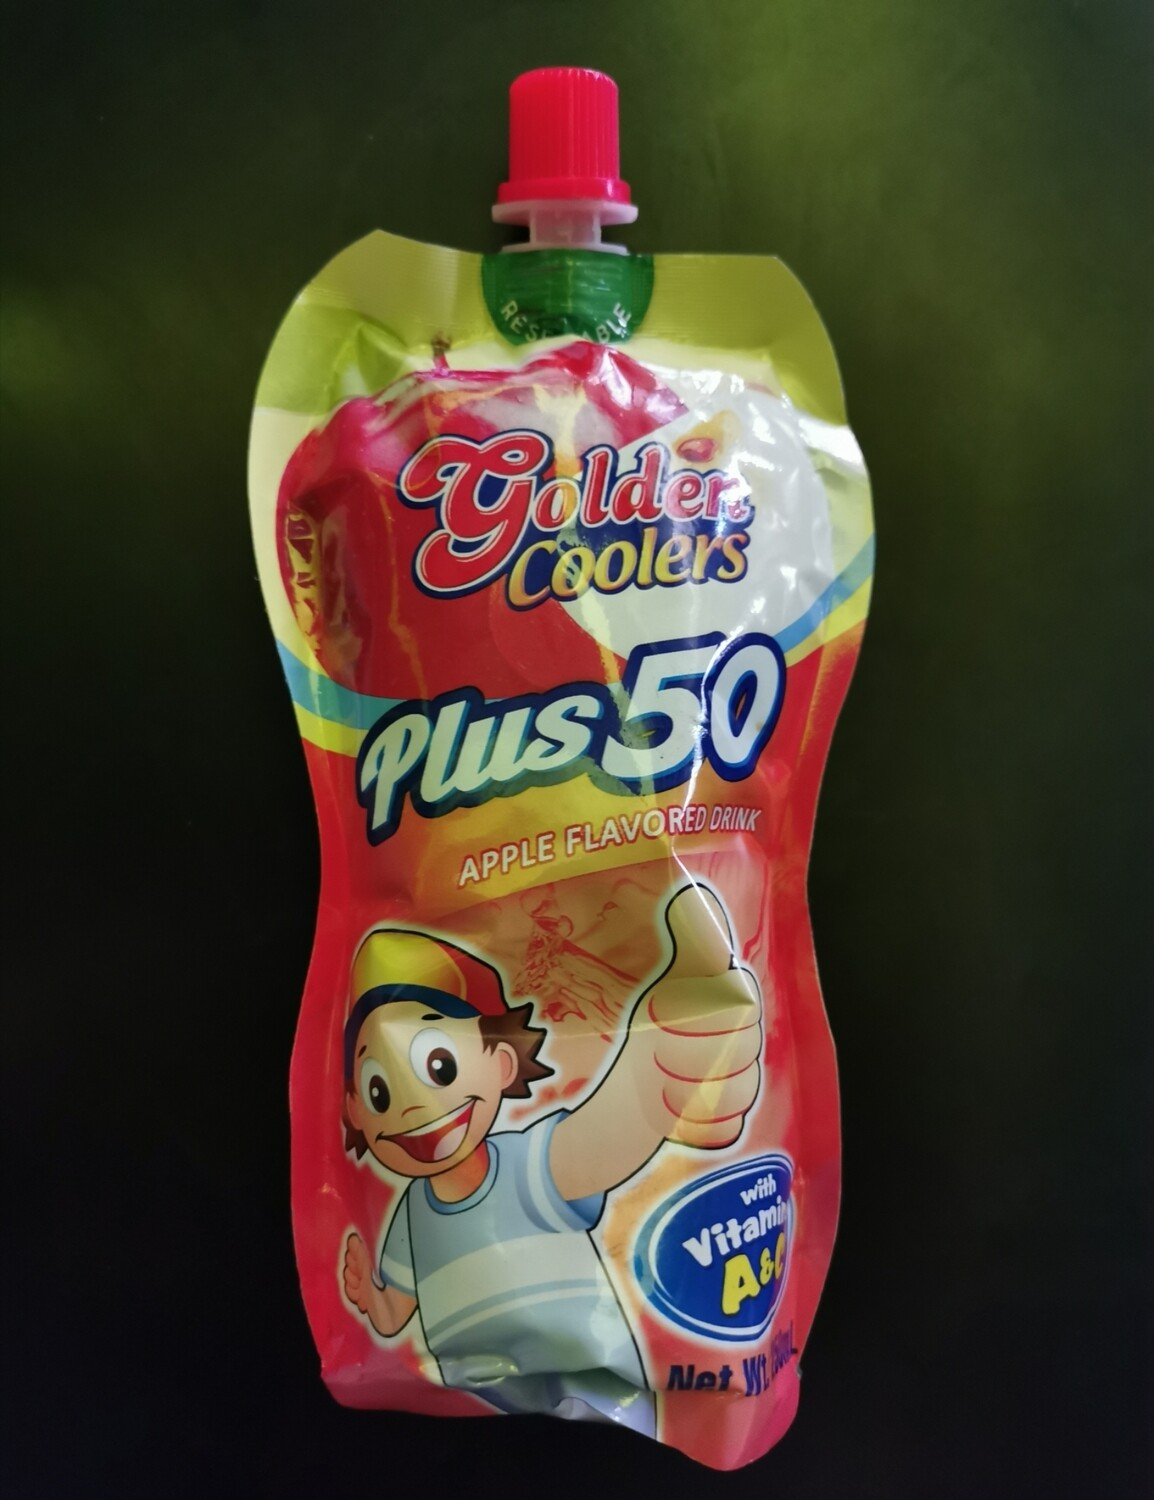 Golden Coolers Flavored Drink - Apple (250ml)